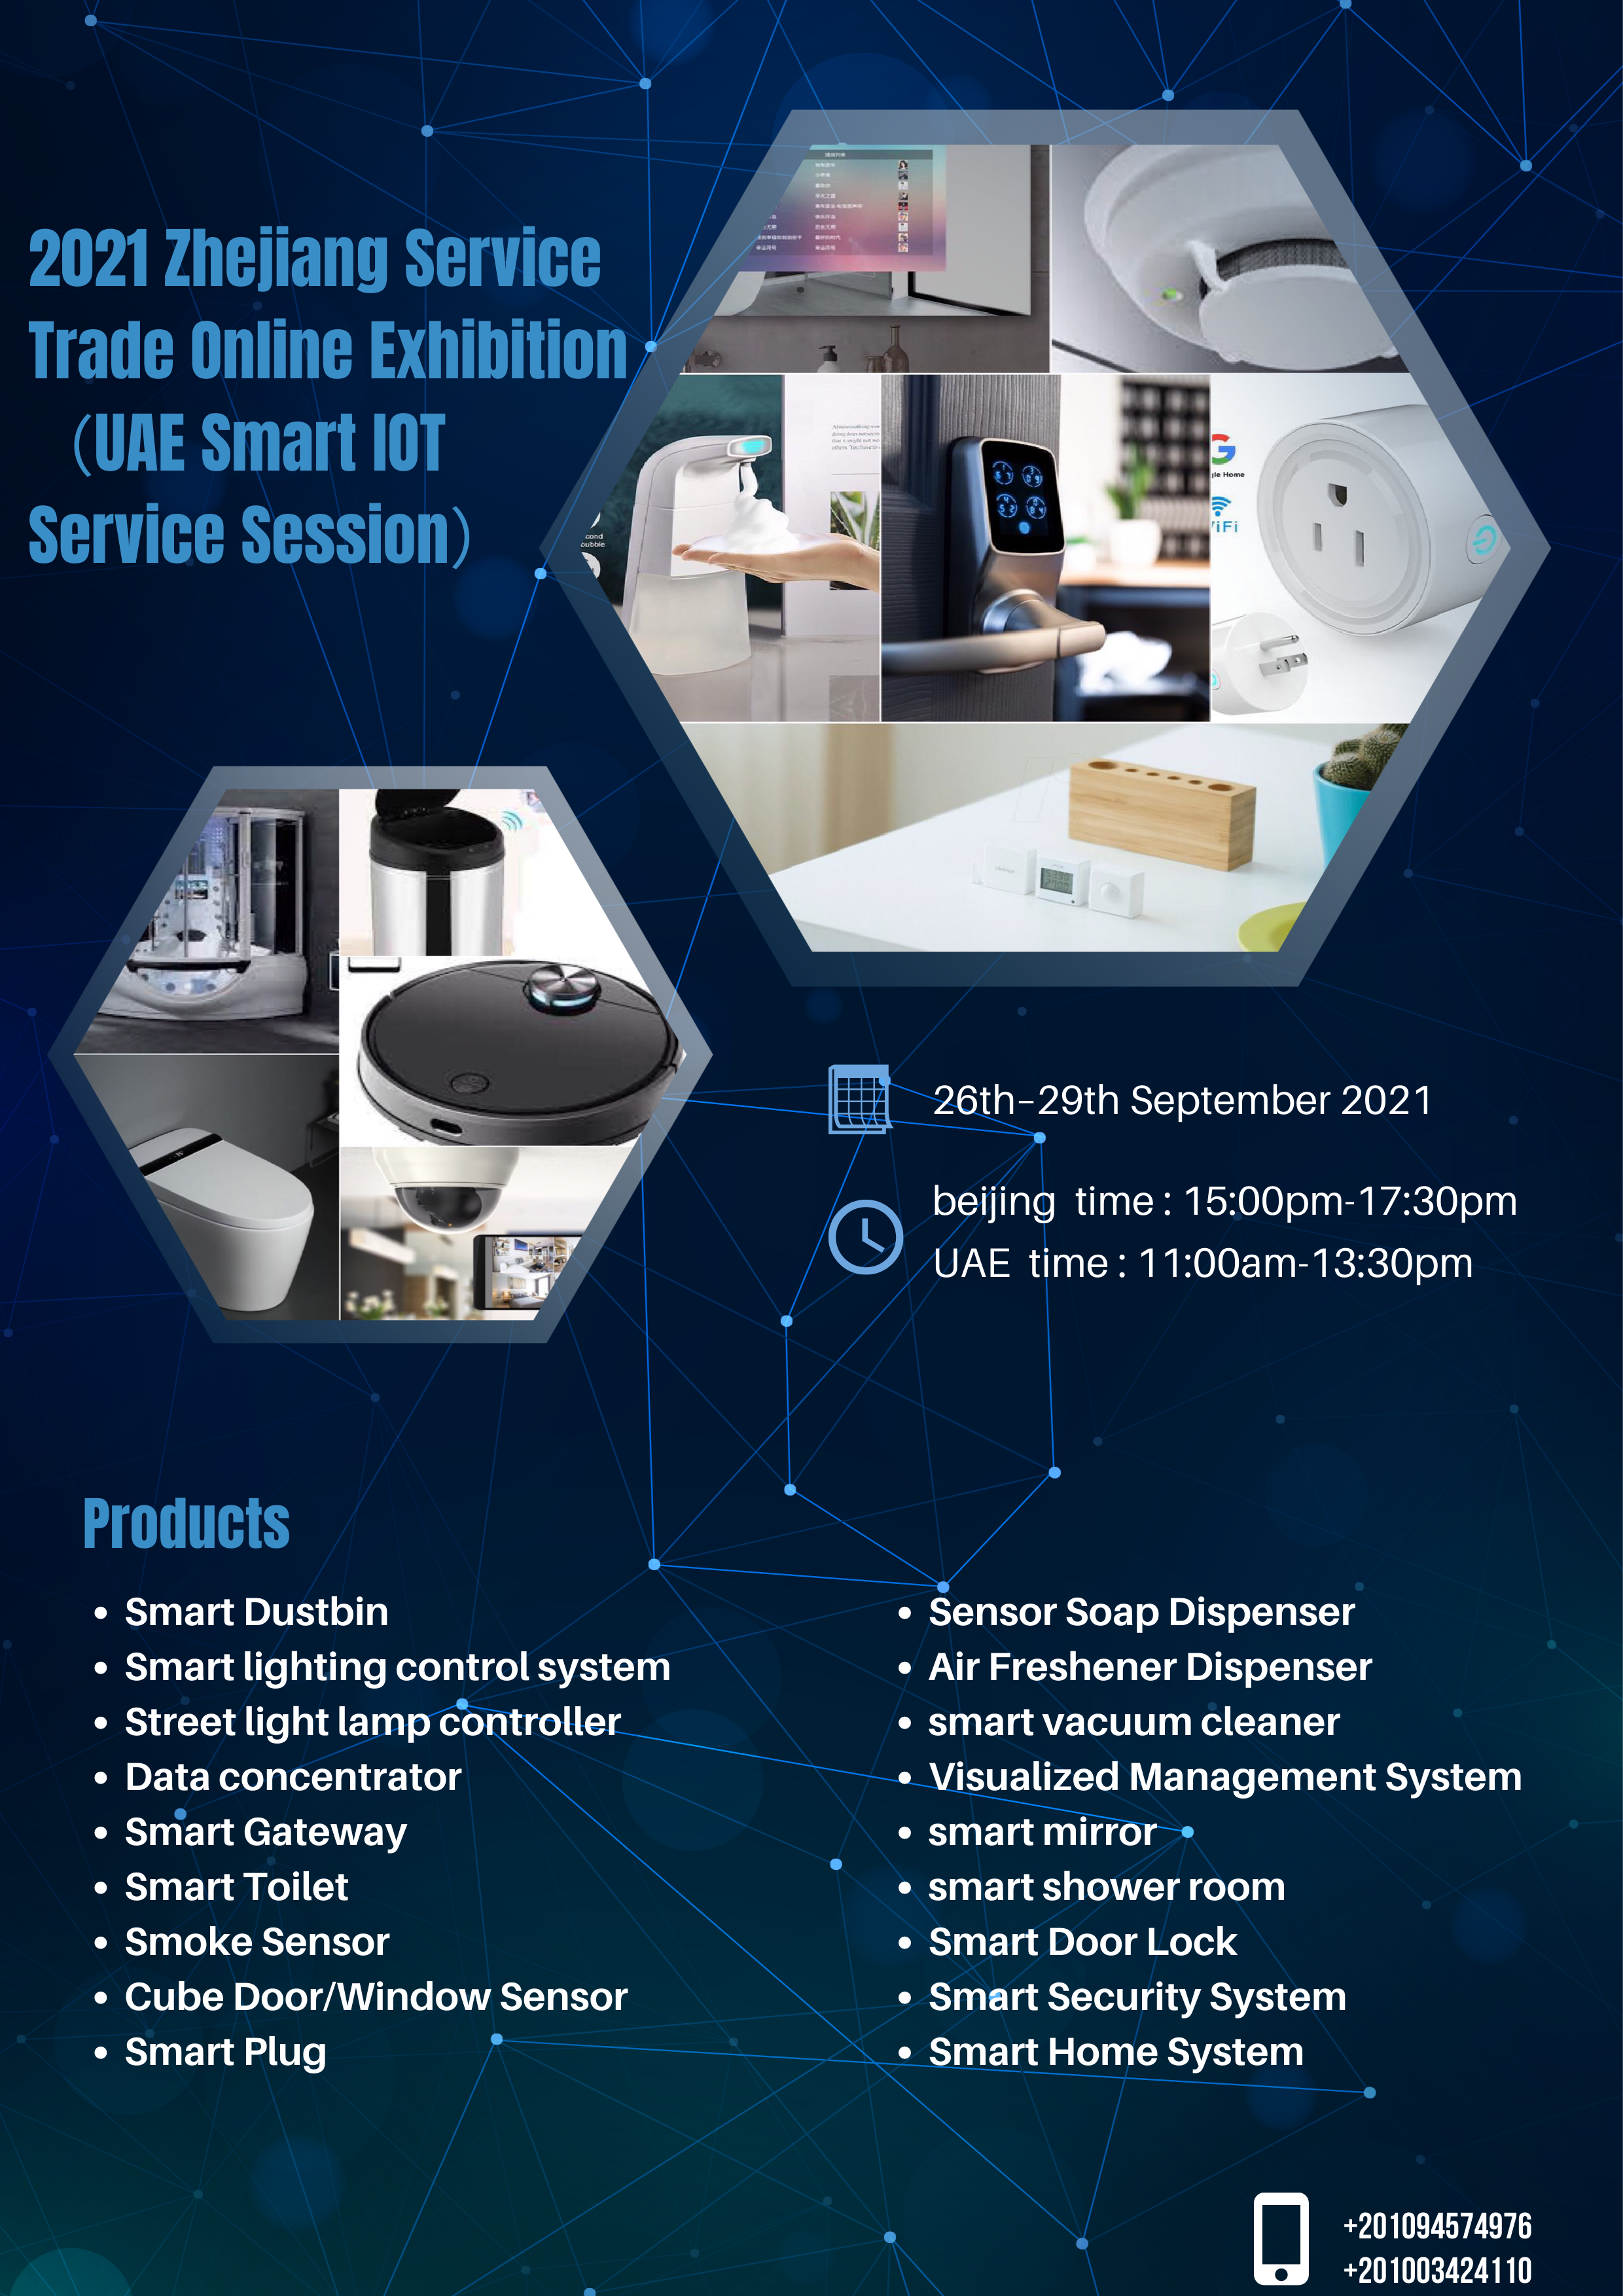 The intelligence of Zhejiang and UAE,  connected the world of things. The opening of 2021 Zhejiang Service Trade Online Exhibition (UAE Smart IoT Service Session)